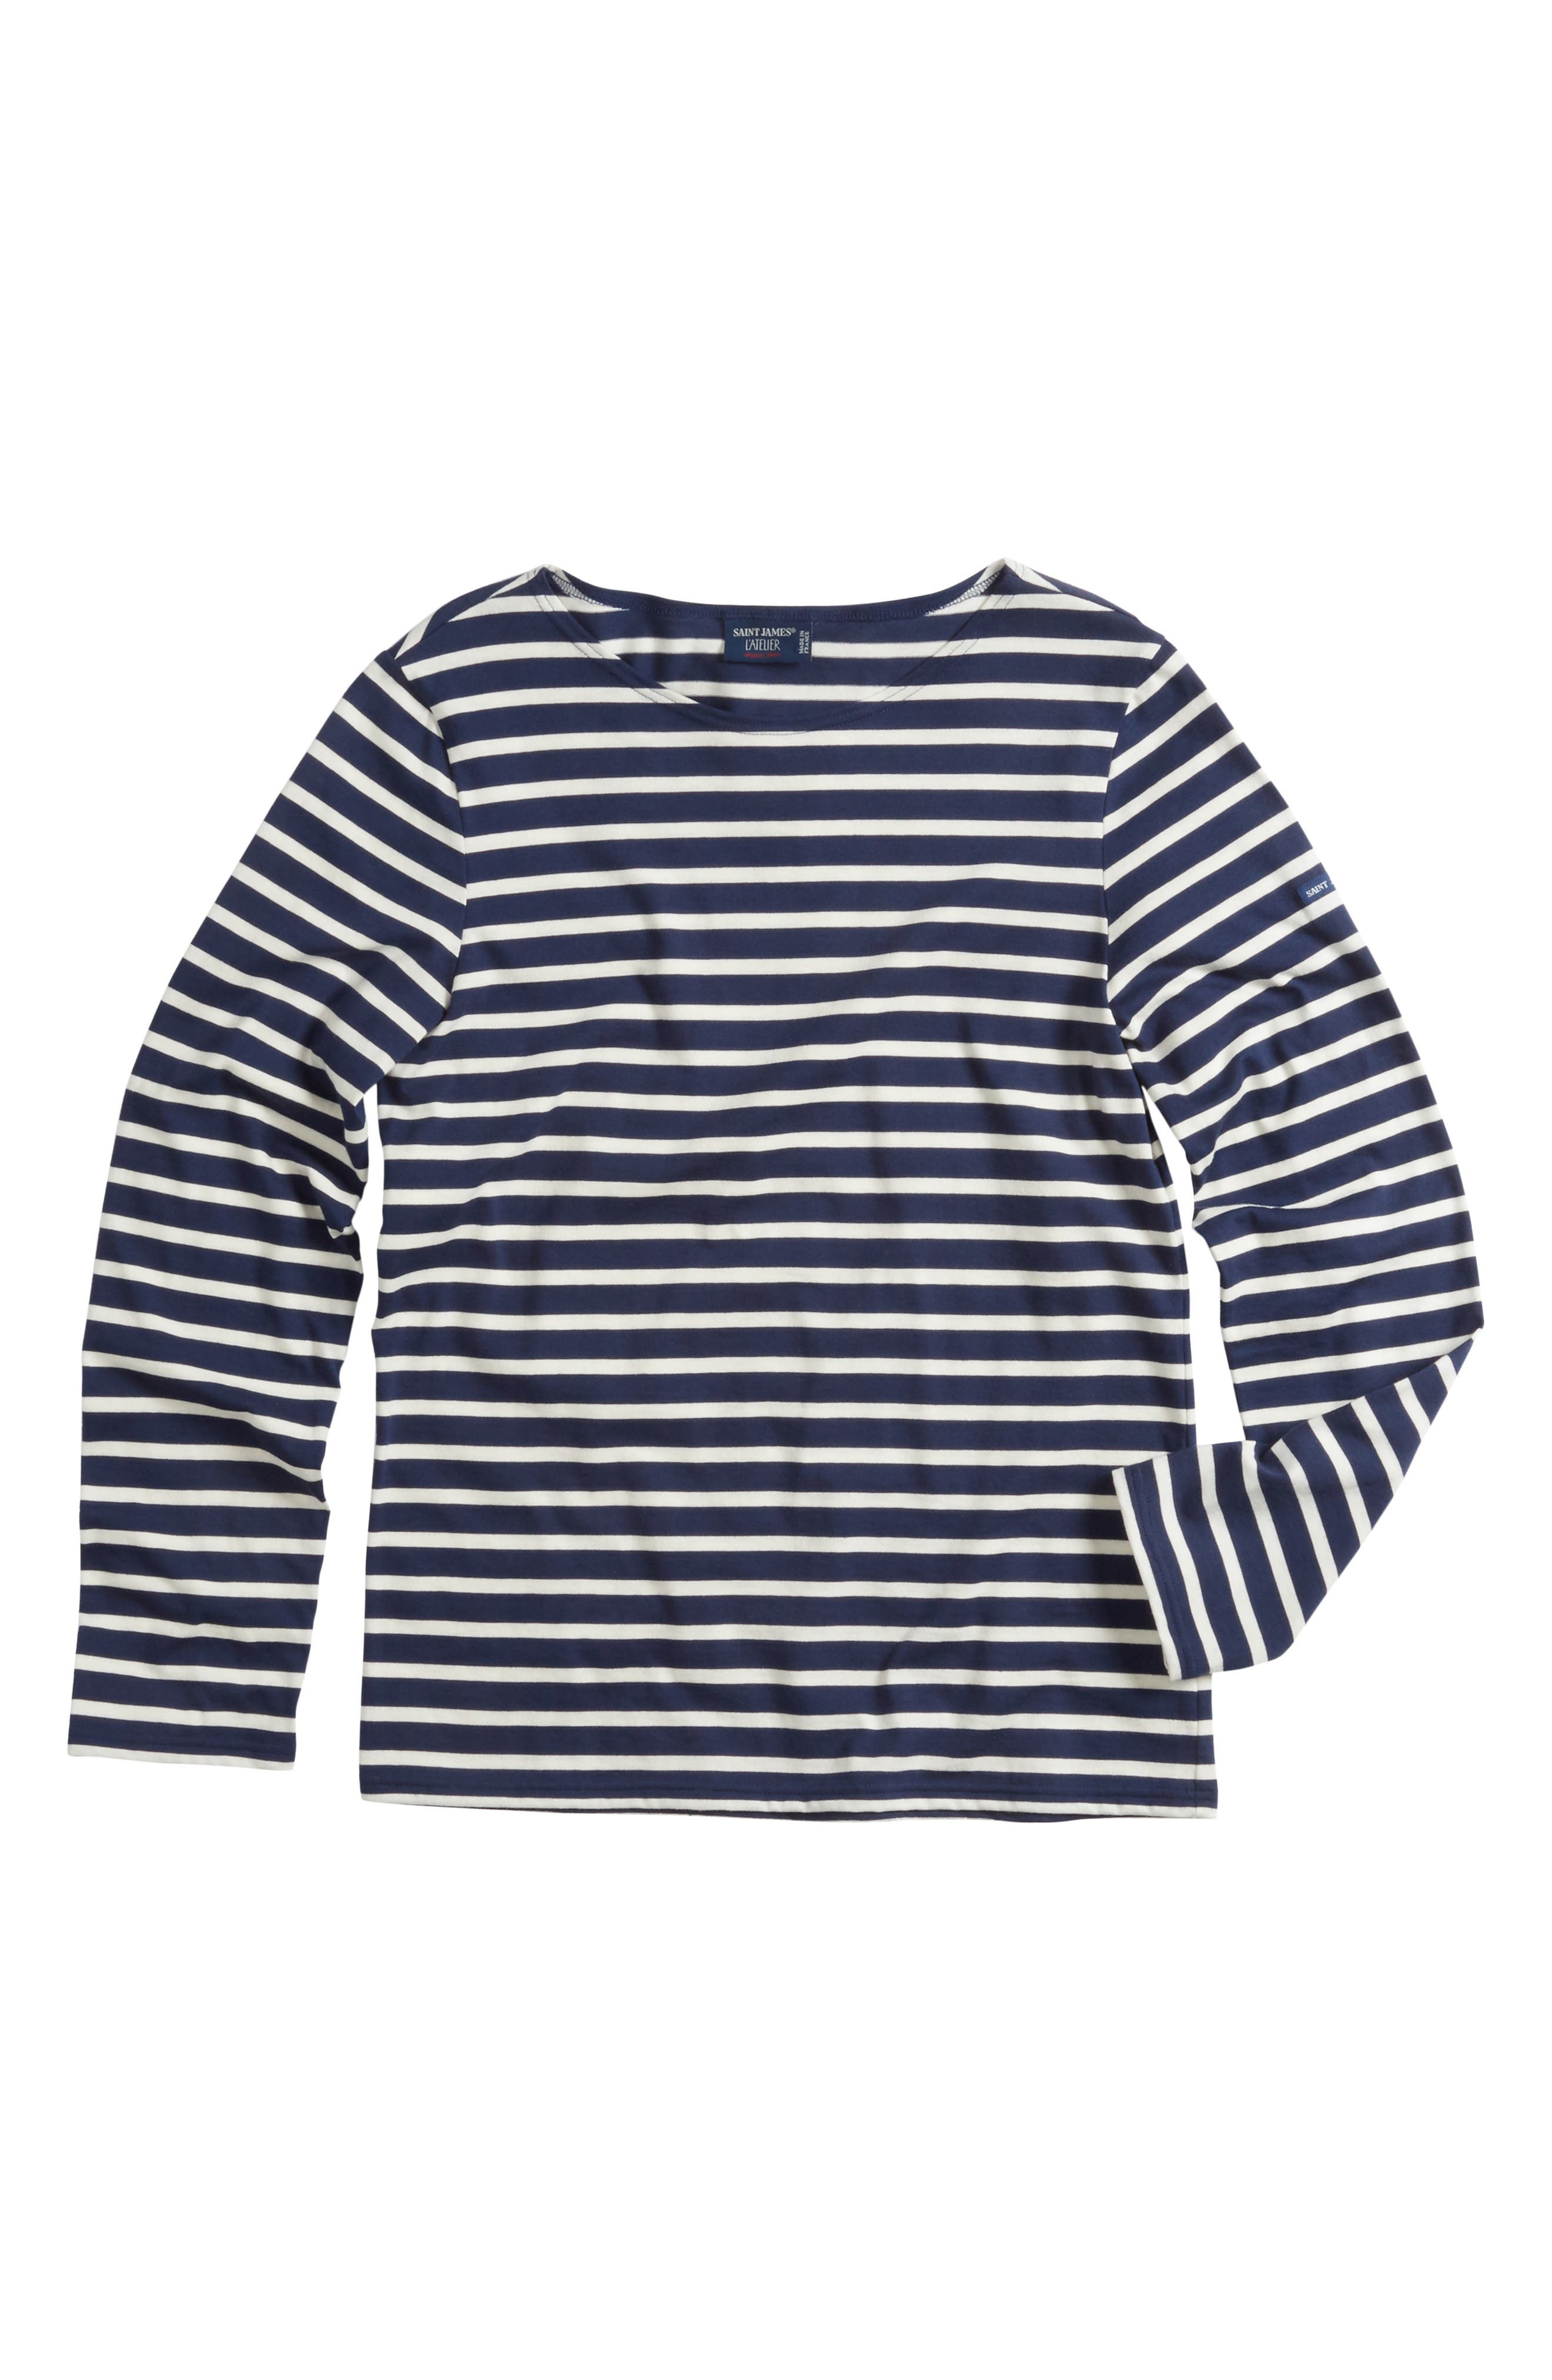 8997ed9b Women's Long Sleeve Tops | Nordstrom